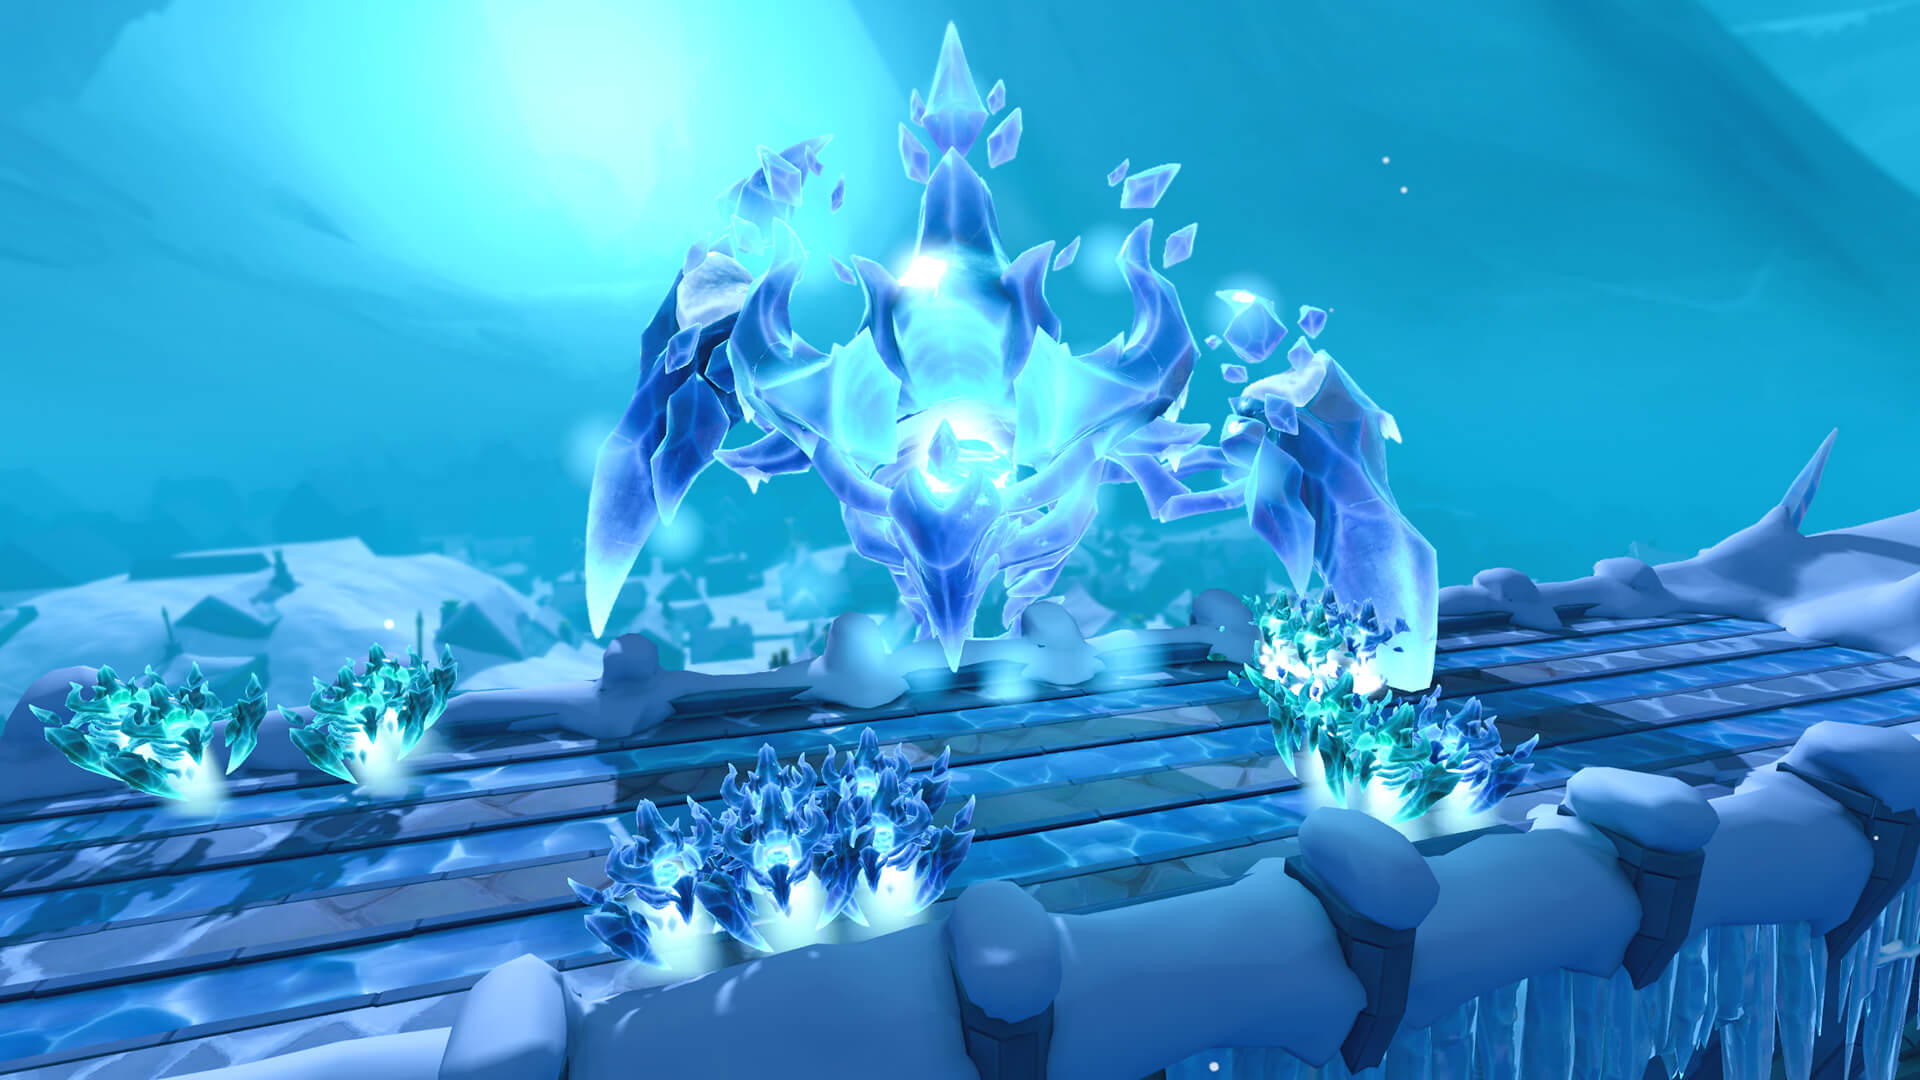 The Elder God Wars wage on as The Glacor Front unleashes the ice army of Wen in RuneScape - live today